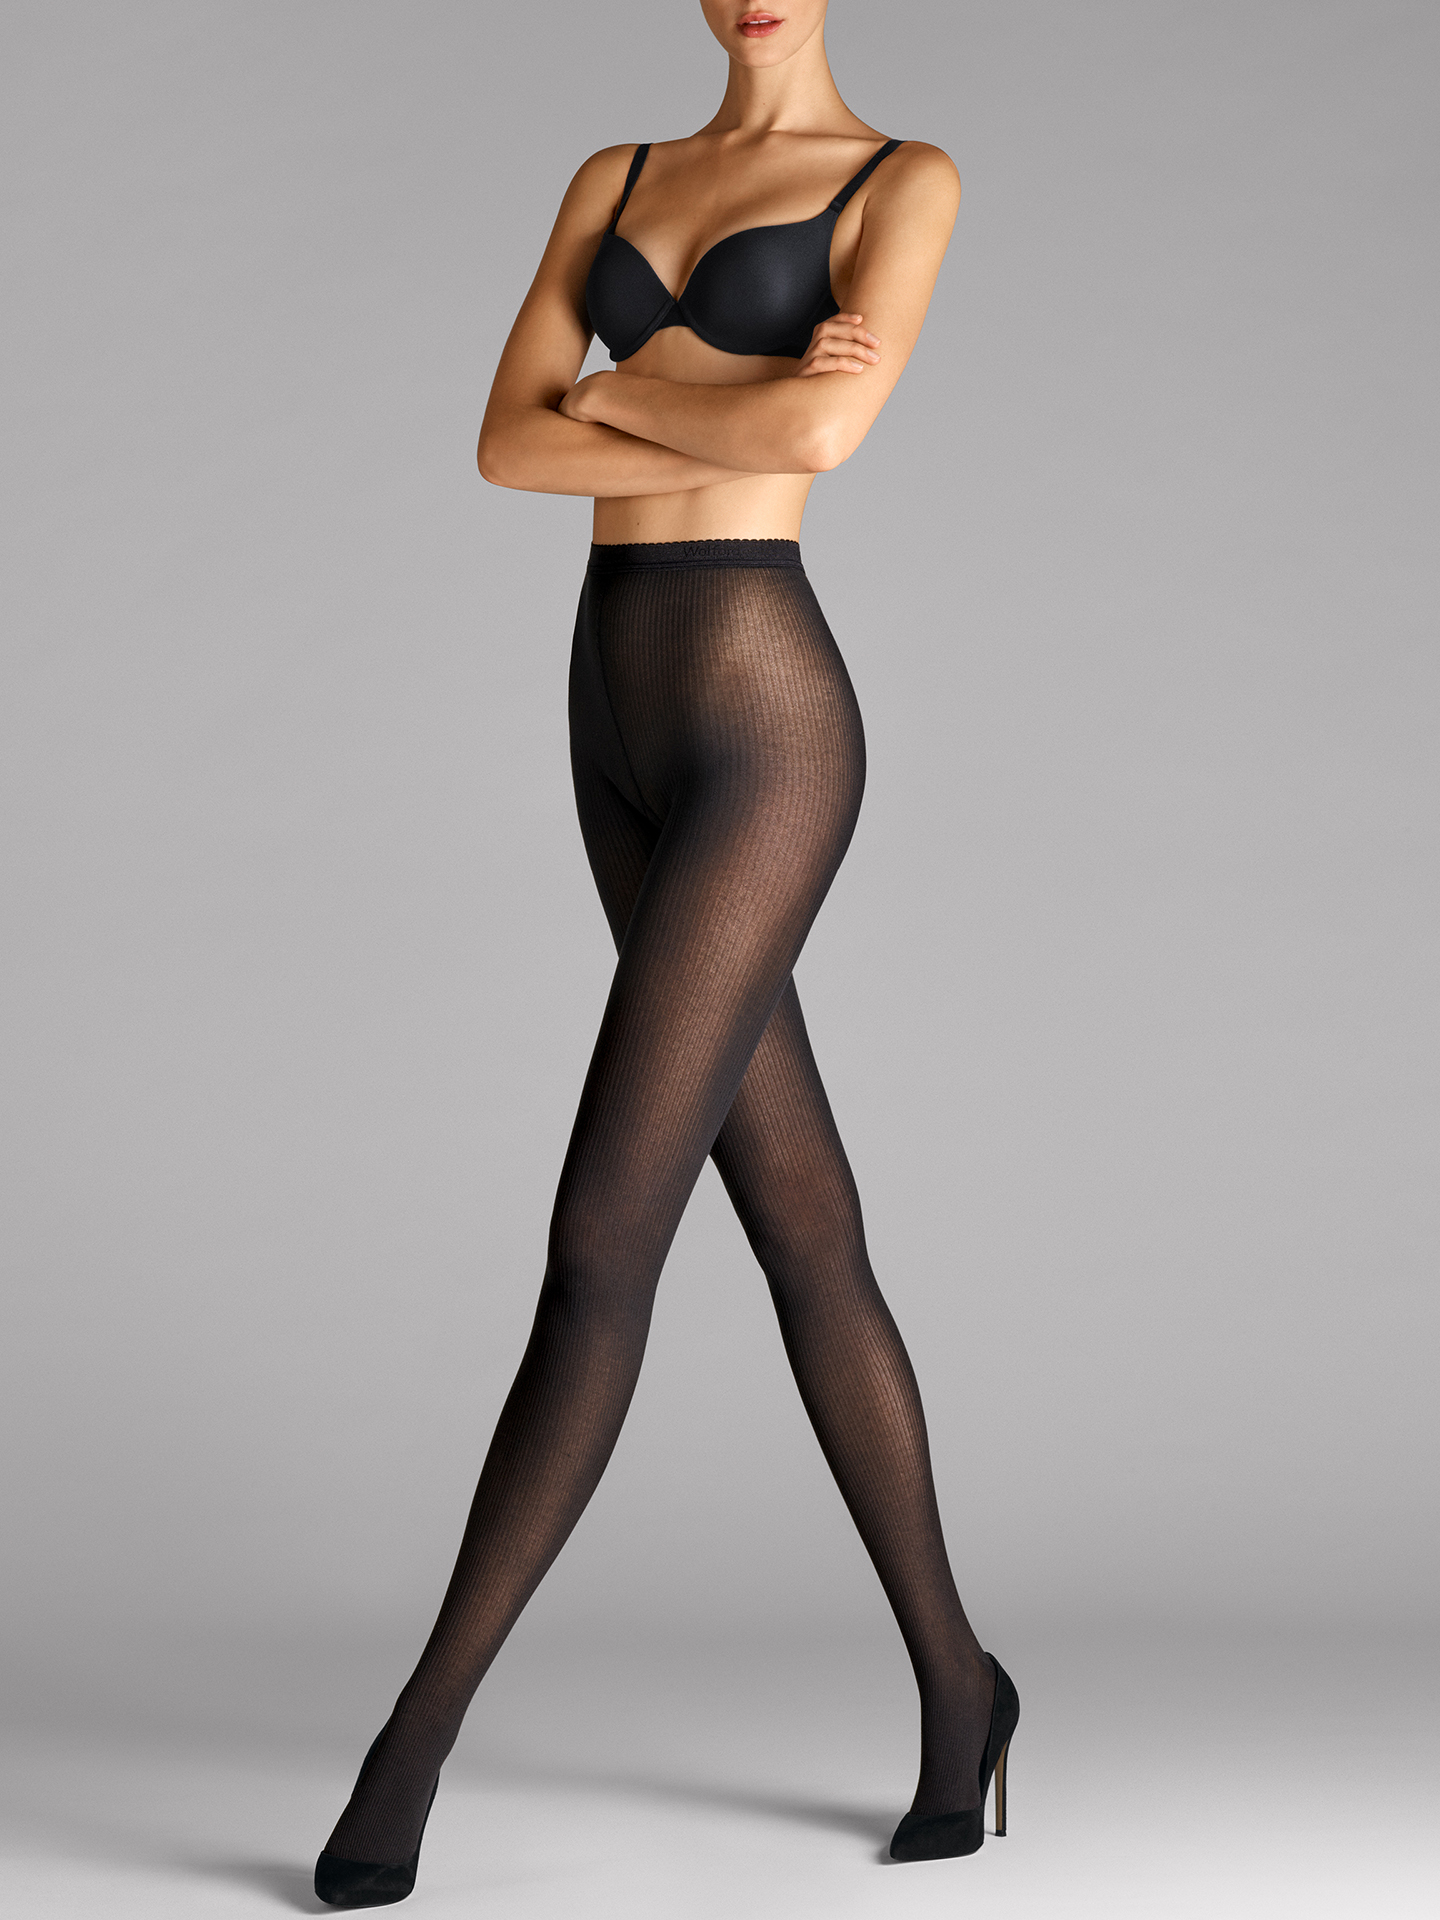 Superfine Cotton Rib Tights - 7005 - XS | Sportbekleidung > Sporthosen > Tights | Black | Wolford